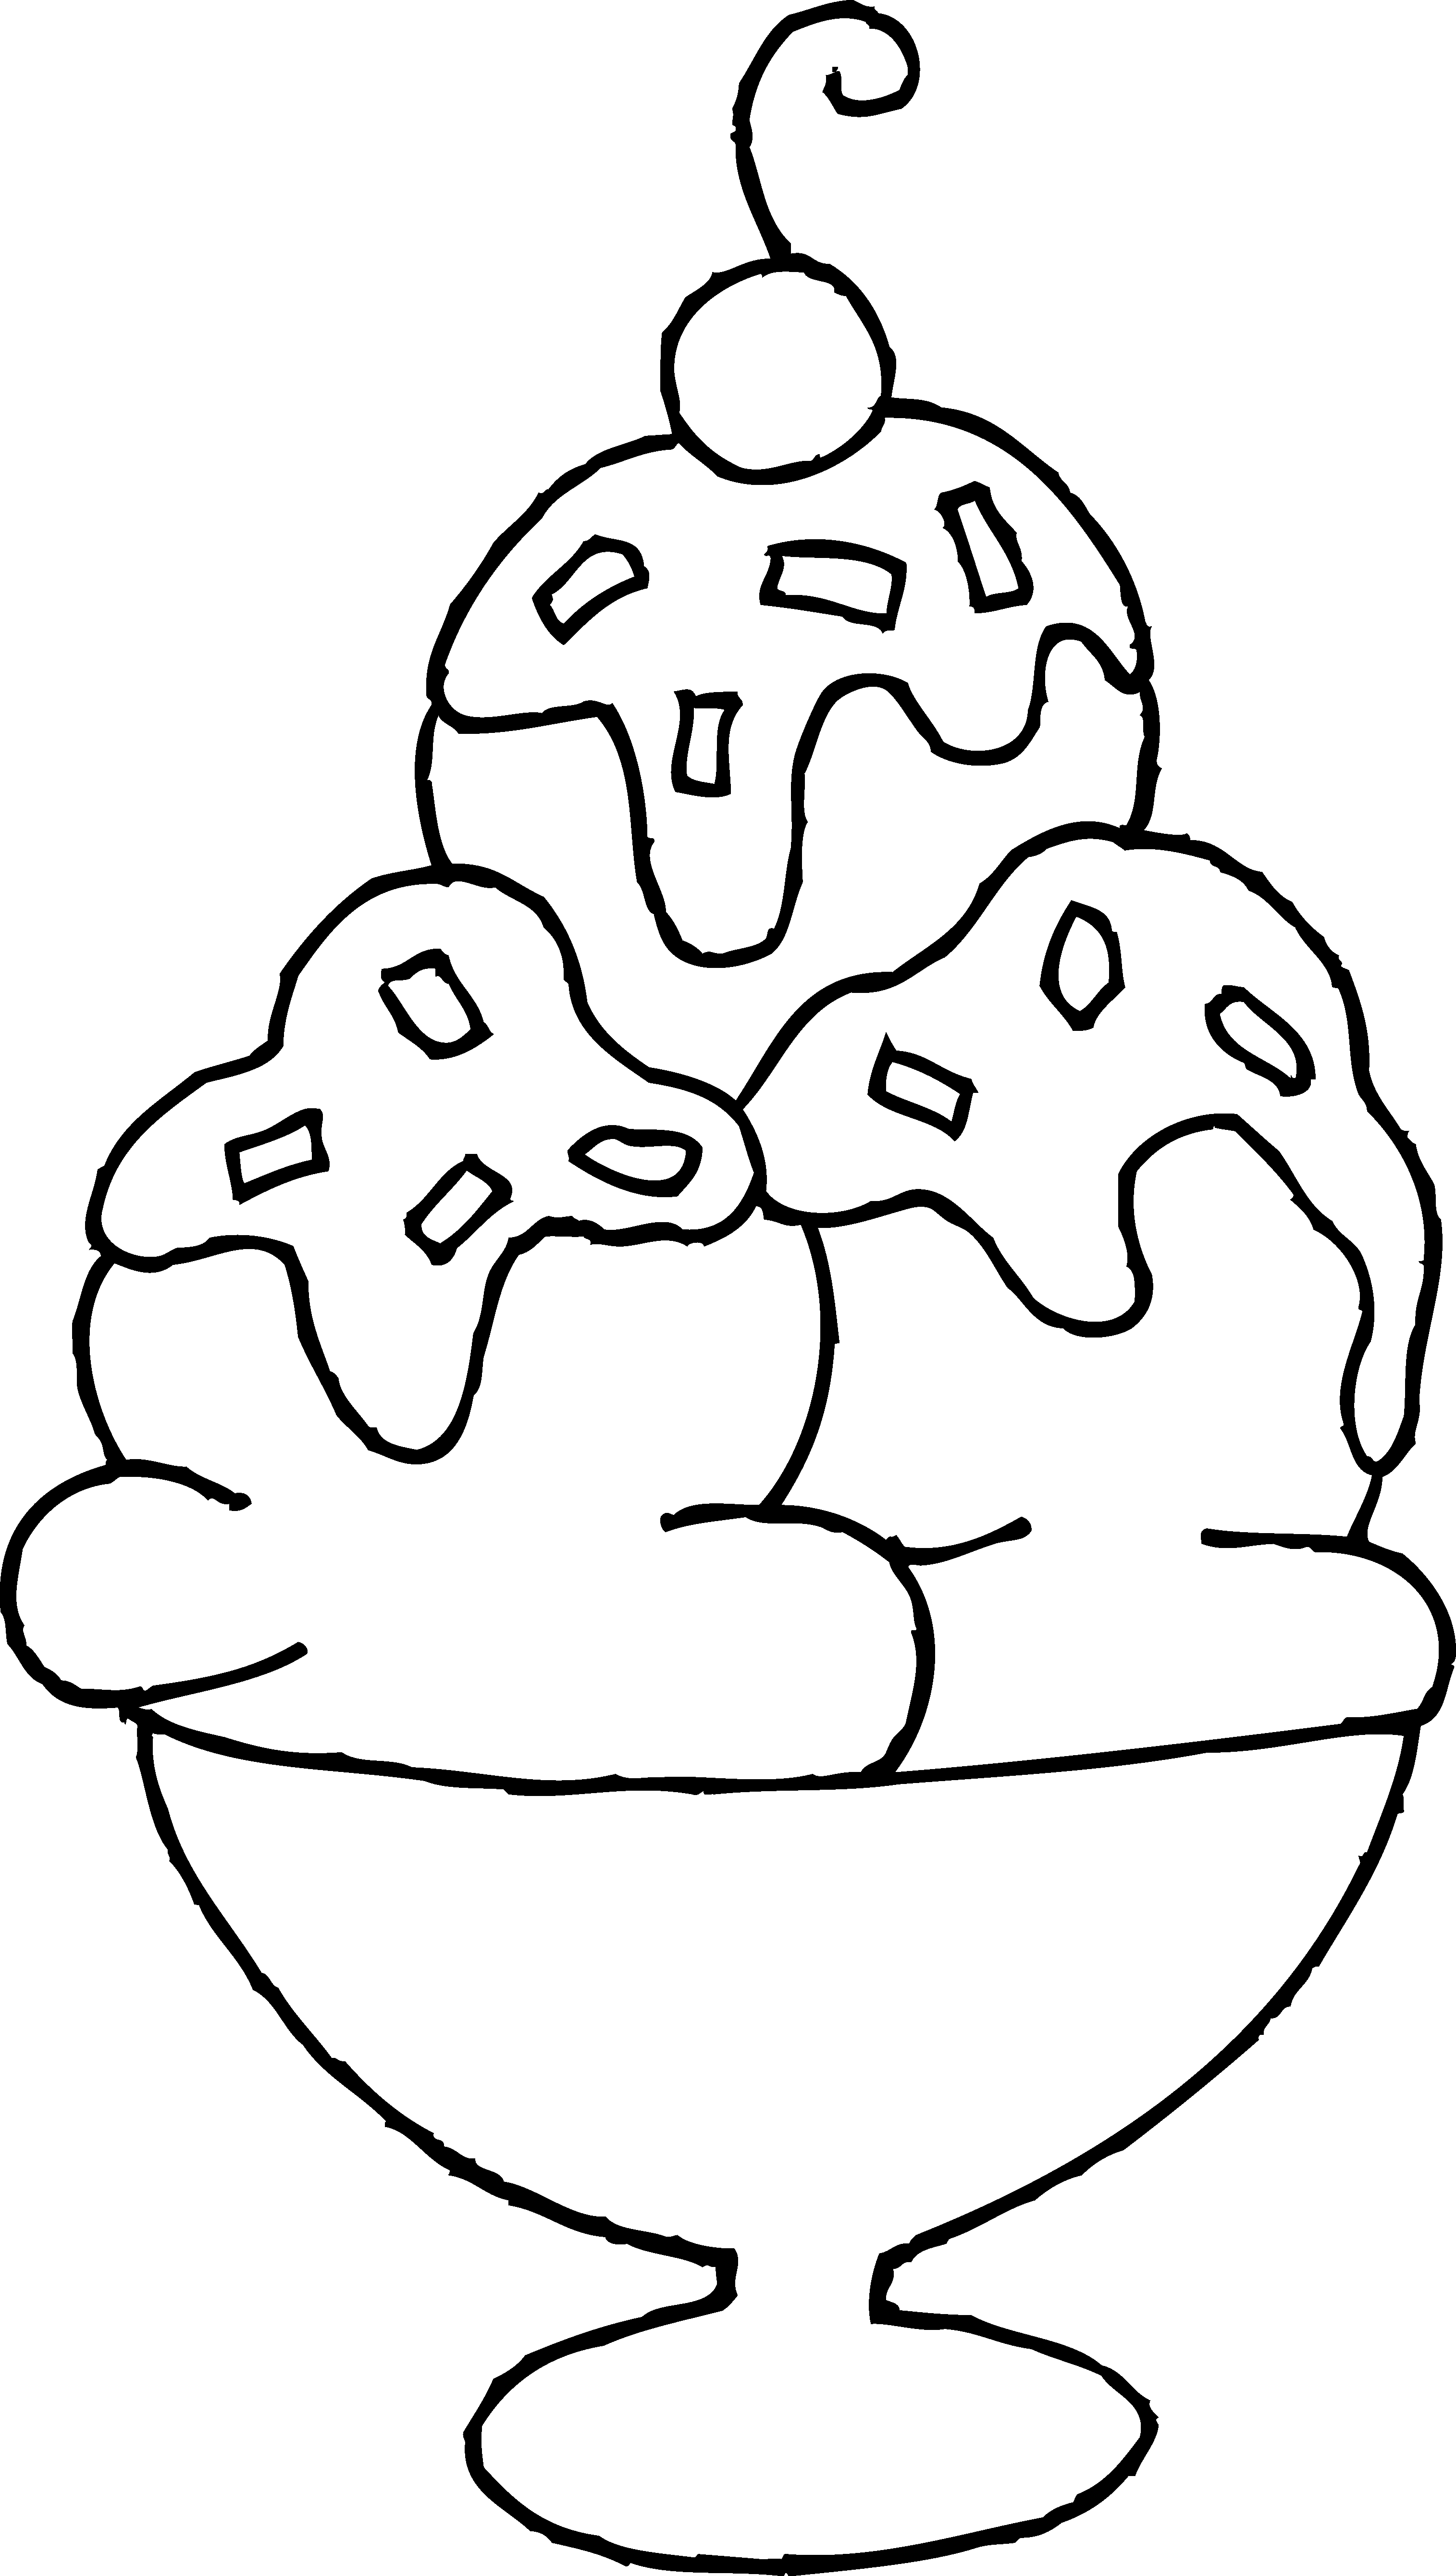 Ice cream sundae pages. Yogurt clipart coloring page